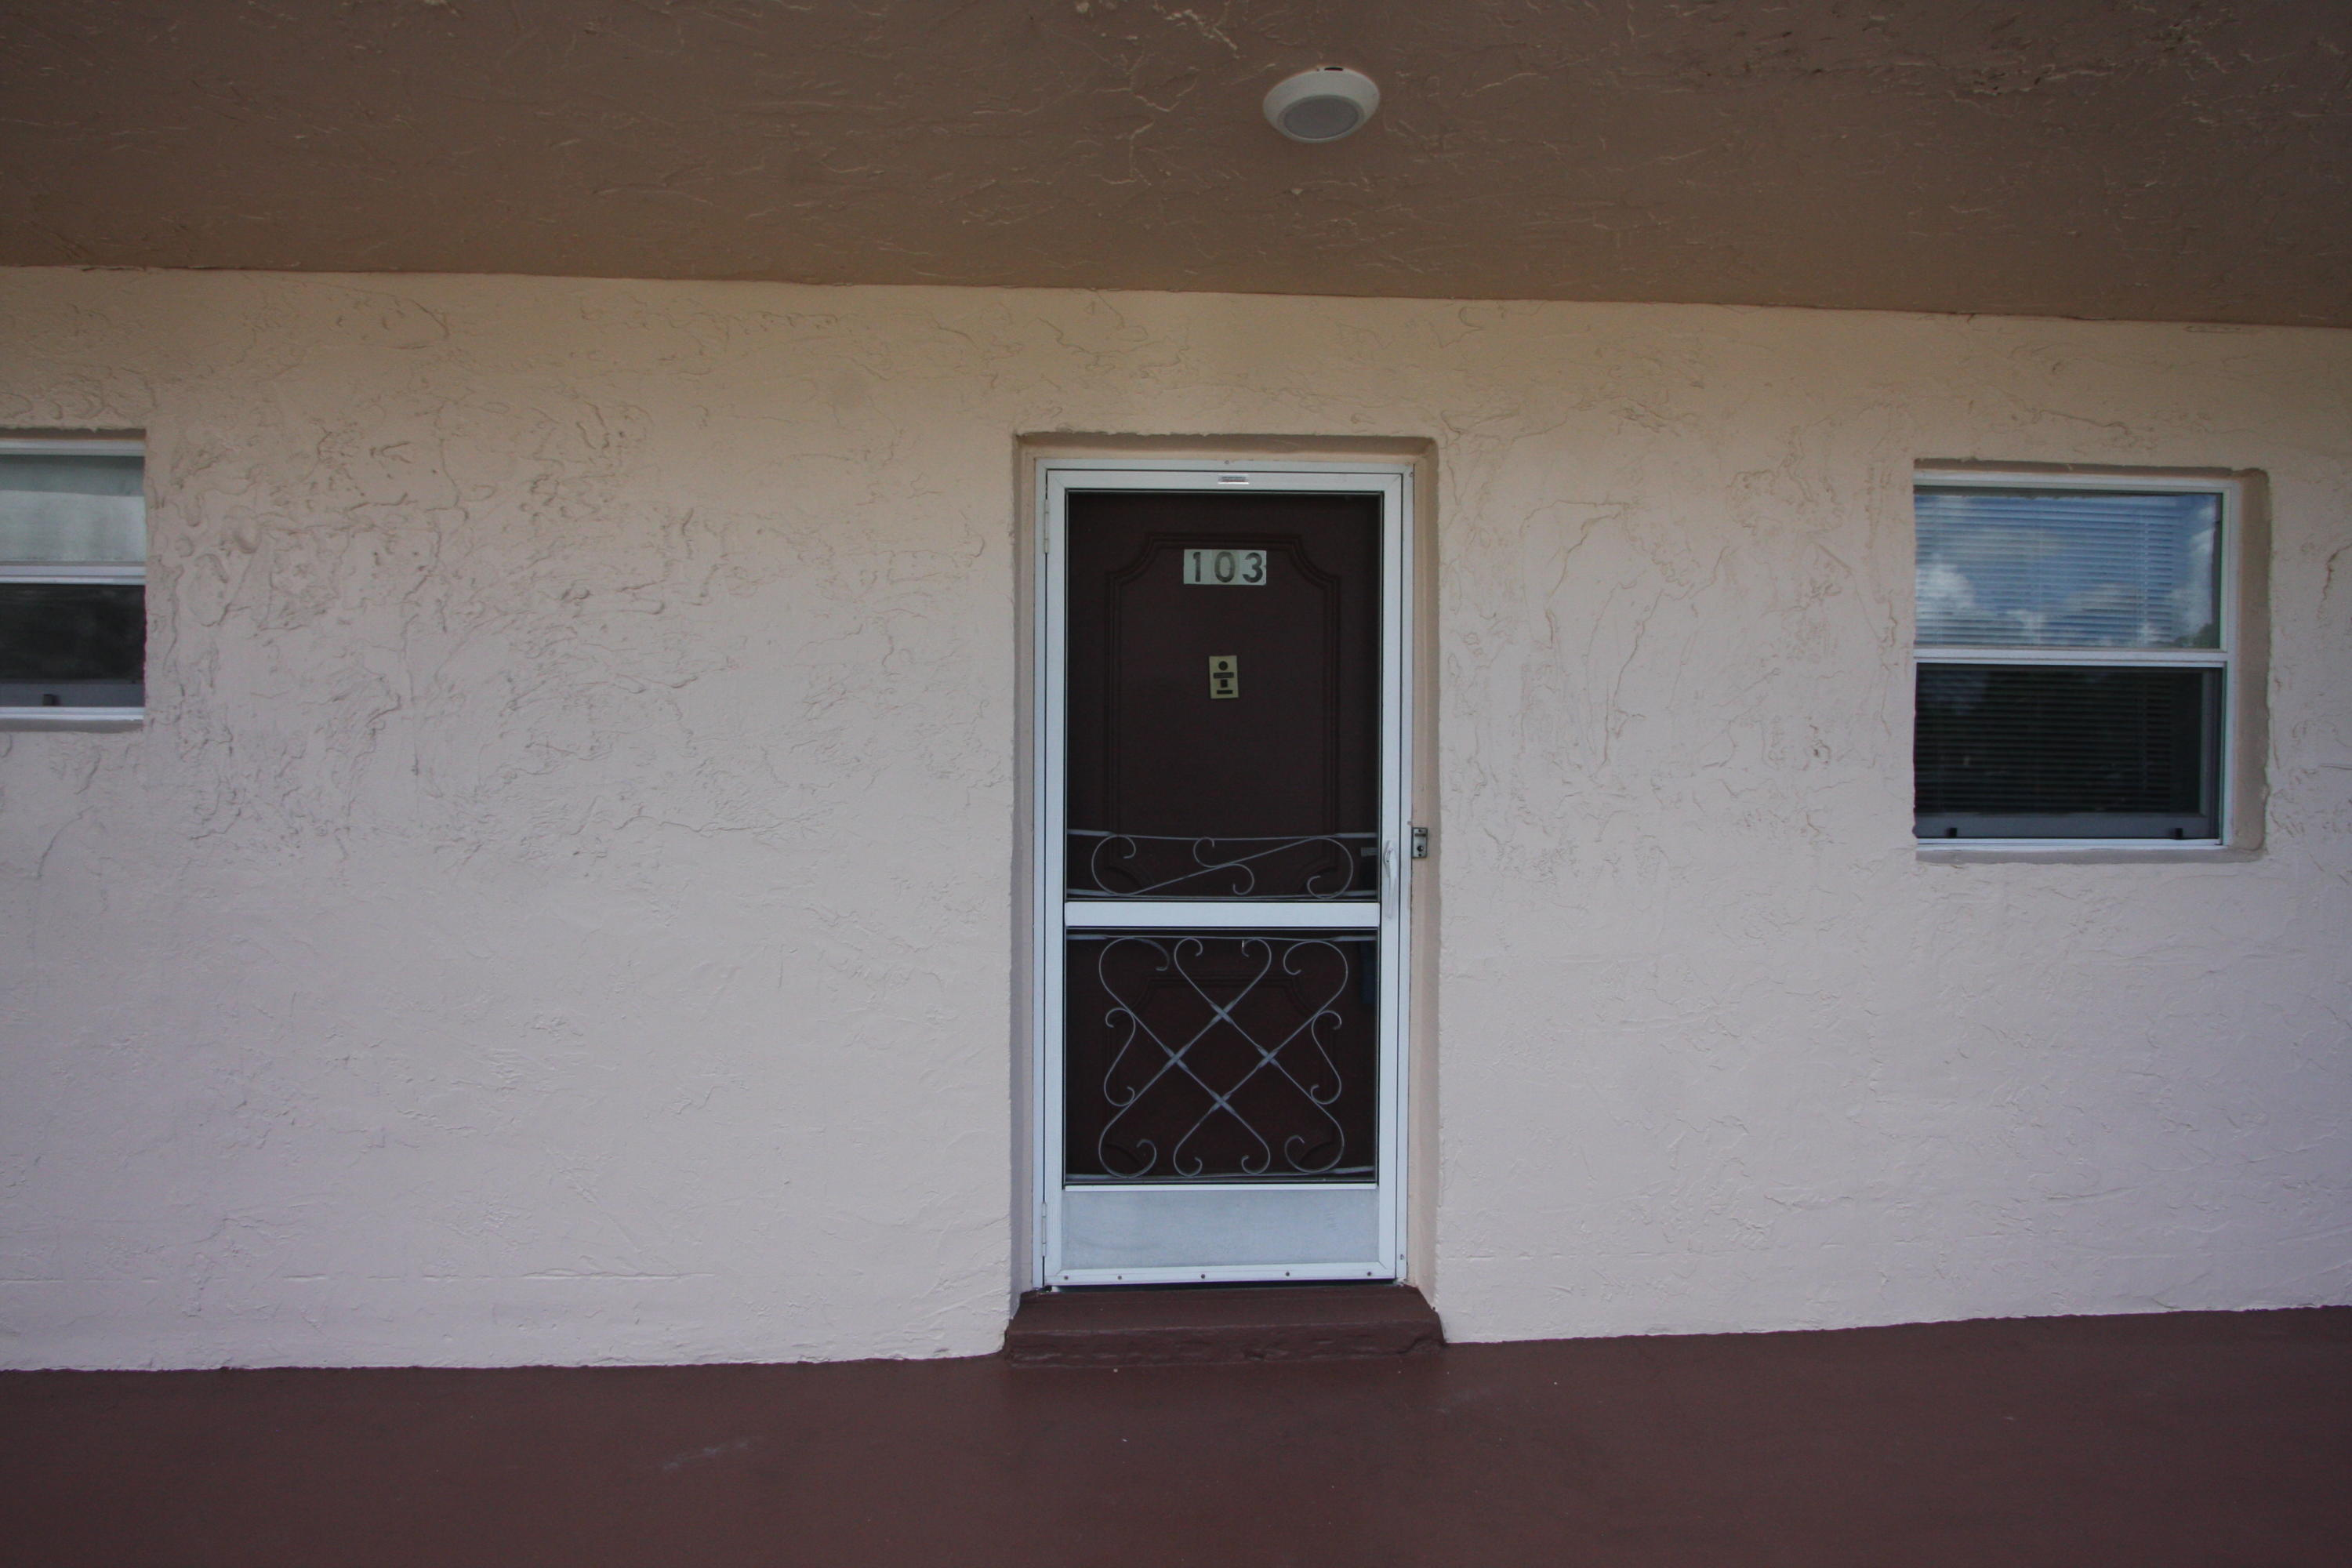 711 Lori Drive, Palm Springs, Florida 33461, 1 Bedroom Bedrooms, ,1 BathroomBathrooms,Condo/Coop,For Sale,Lakeside Village,Lori,1,RX-10444885